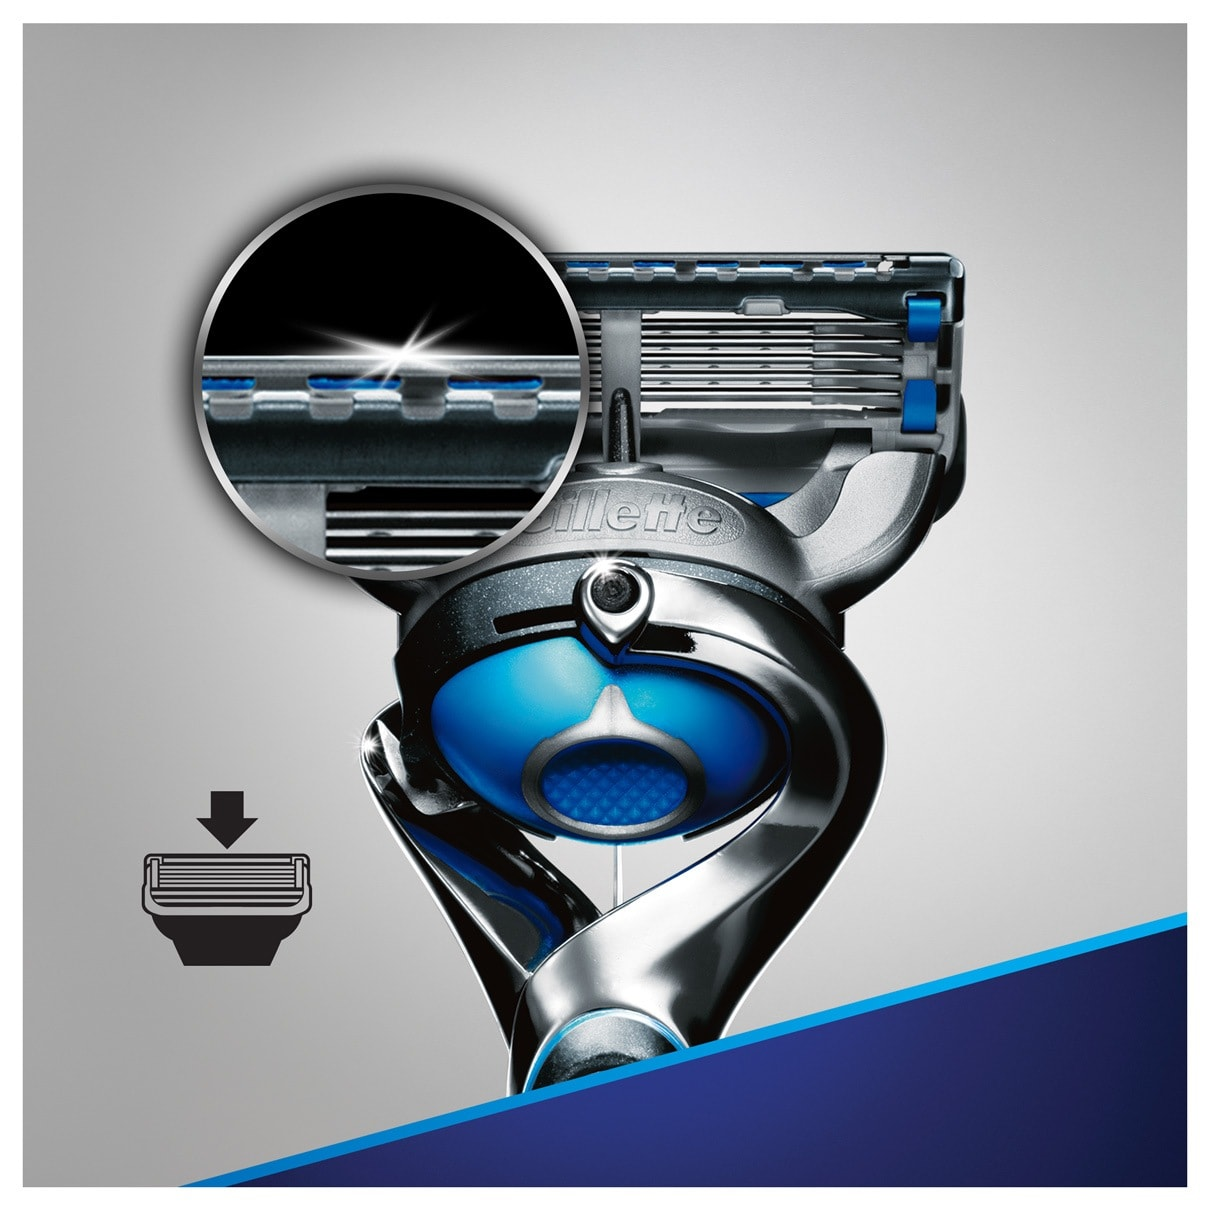 6. Precision trimmer for hard-to-reach areas & styling facial hair